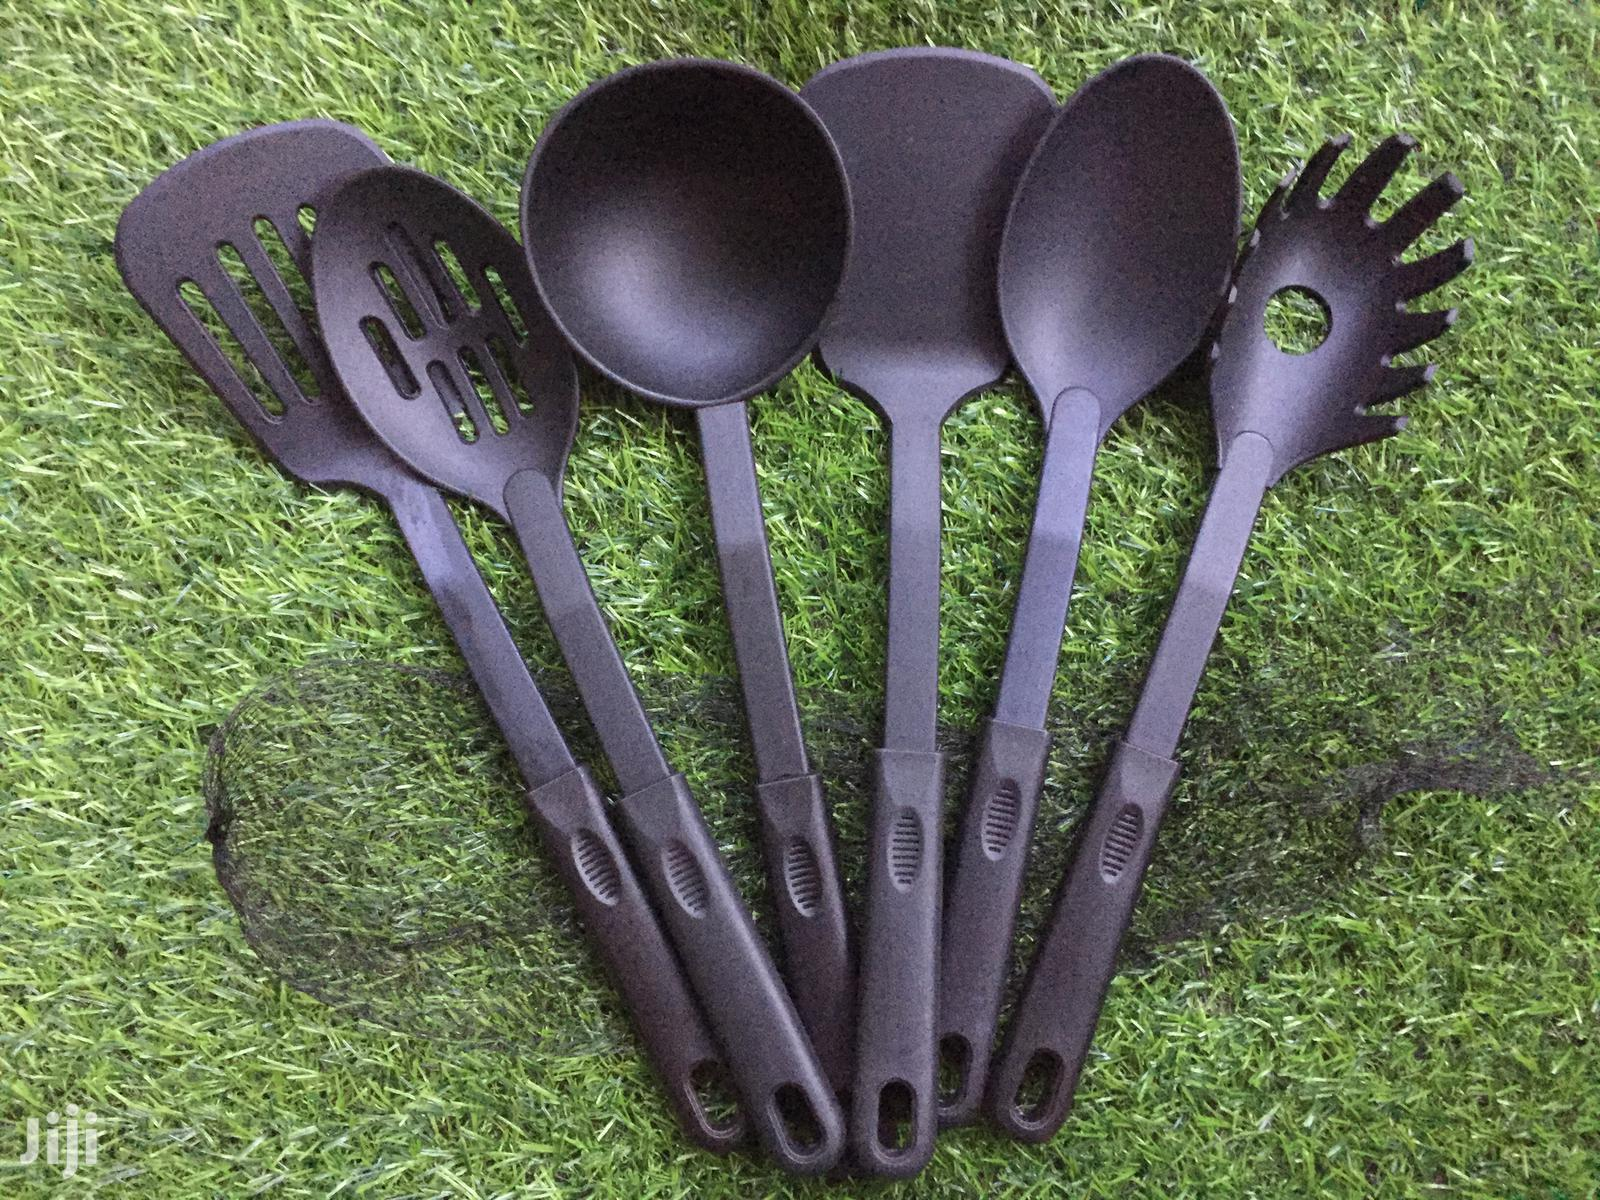 6 Set Silicone Cooking Tools Set